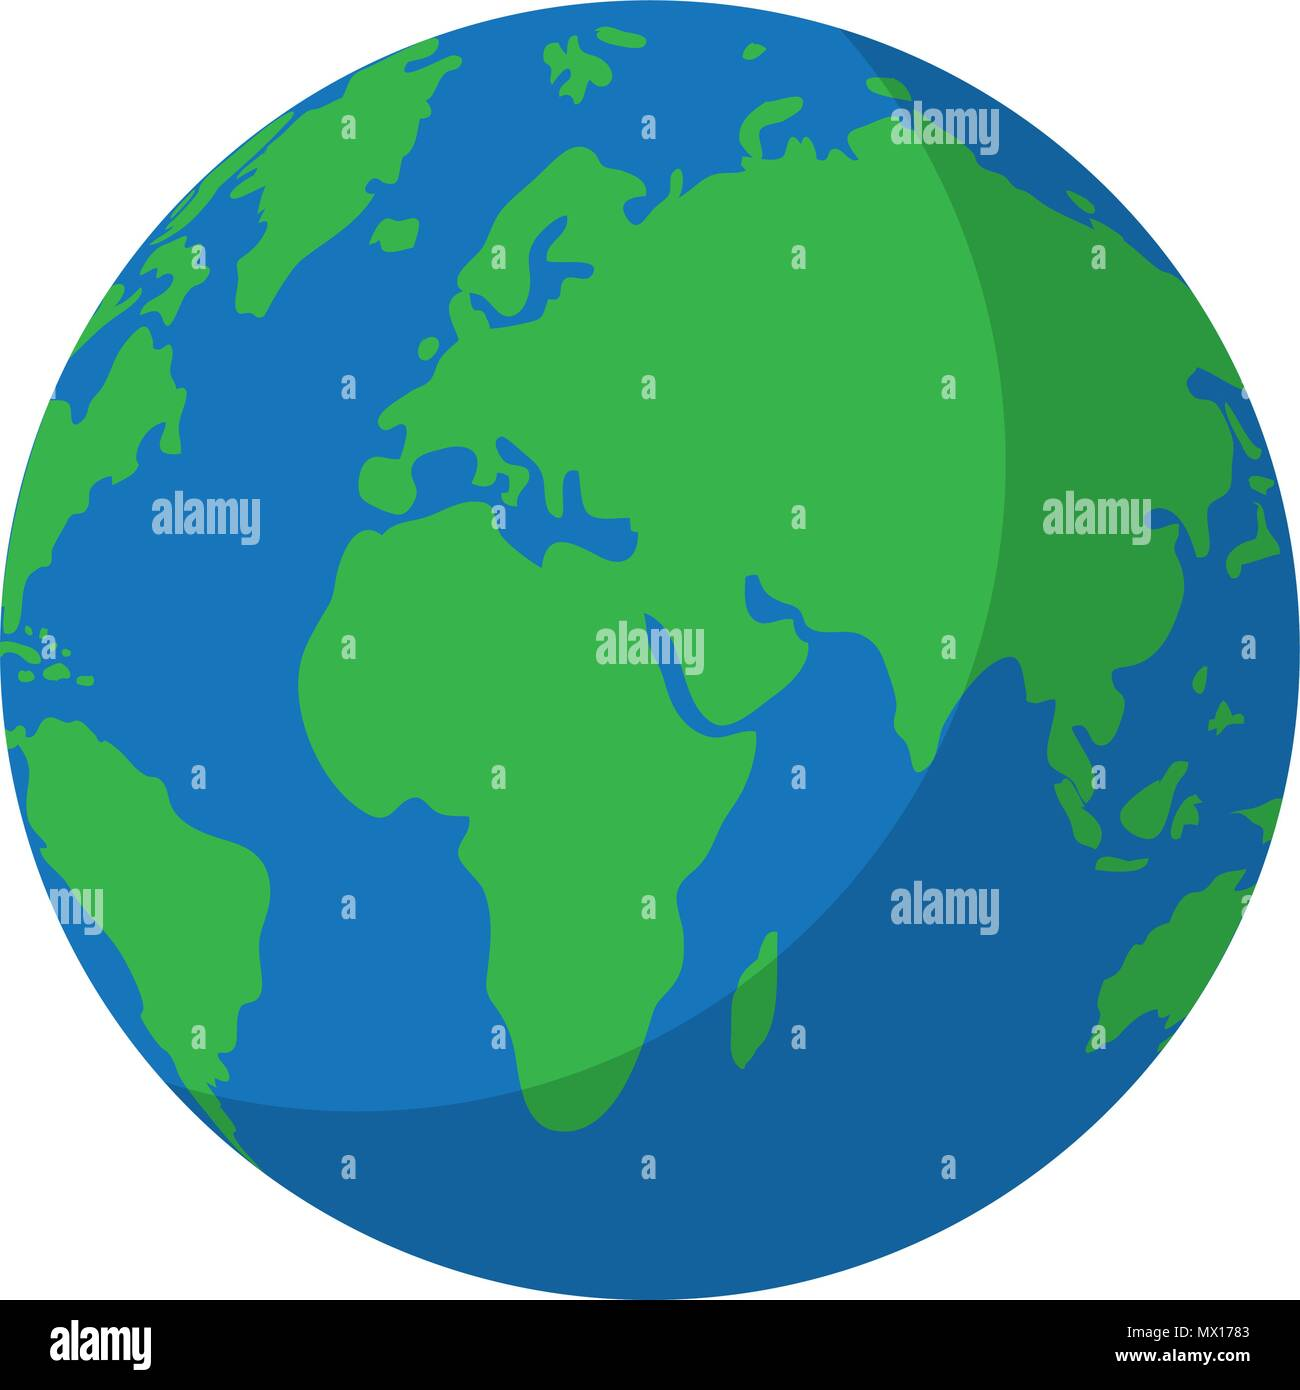 circle global map asia and europe geography Stock Vector Art ... on asia map, regional map, thematic map, mappa mundi, canada map, india map, topographic map, travel map, middle east map, costa rica map, china map, africa map, europe map, united kingdom map, globe map, antarctica map, google map, korea map, world map, european map, usa map, brazil map, australia map,